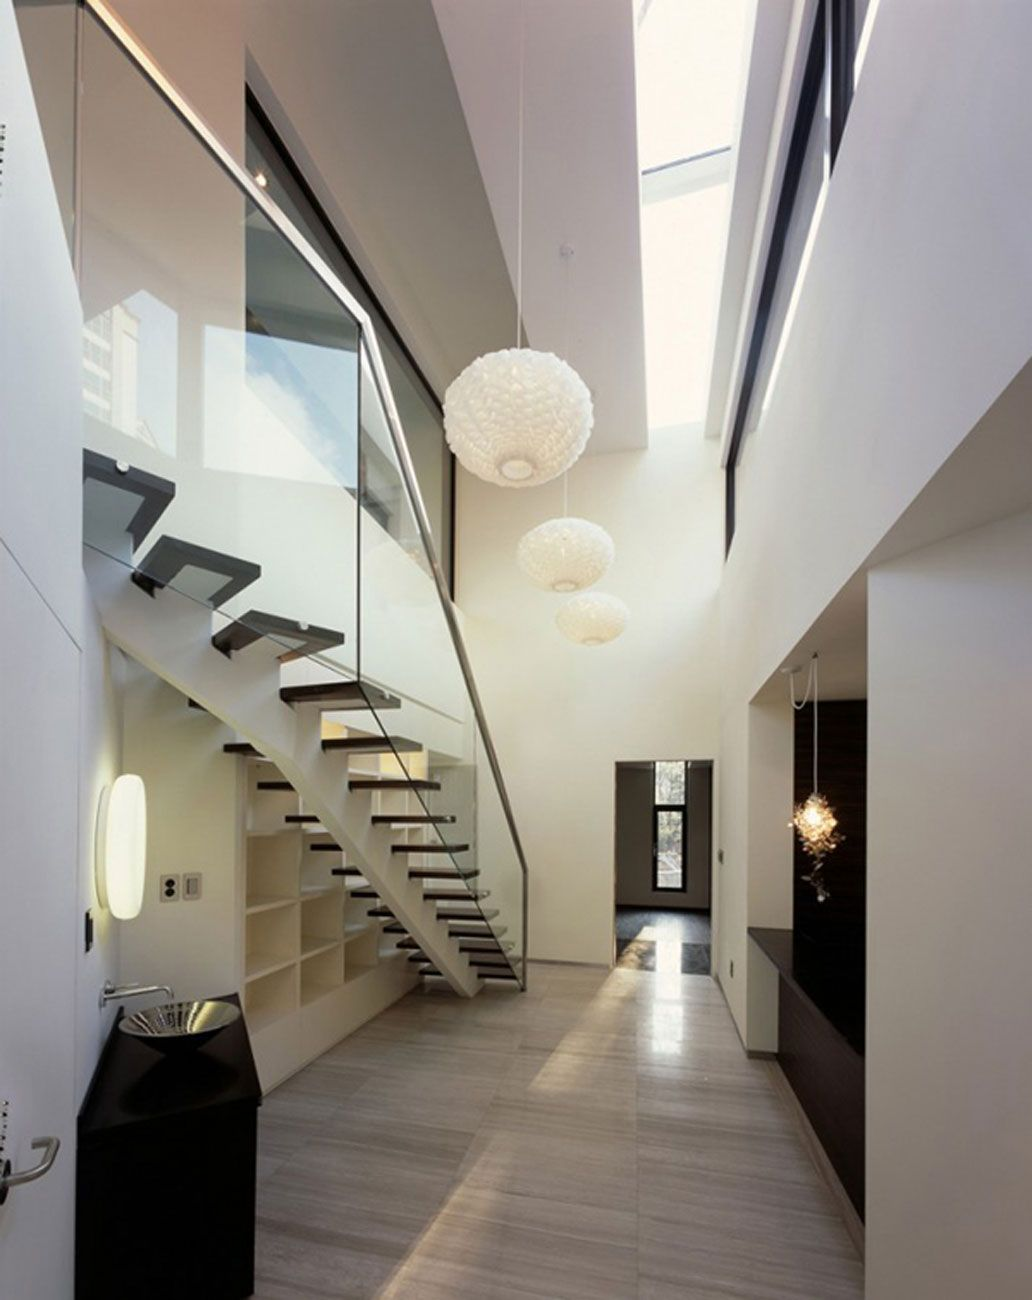 ^ 1000+ images about korean/japanese style house on Pinterest ...